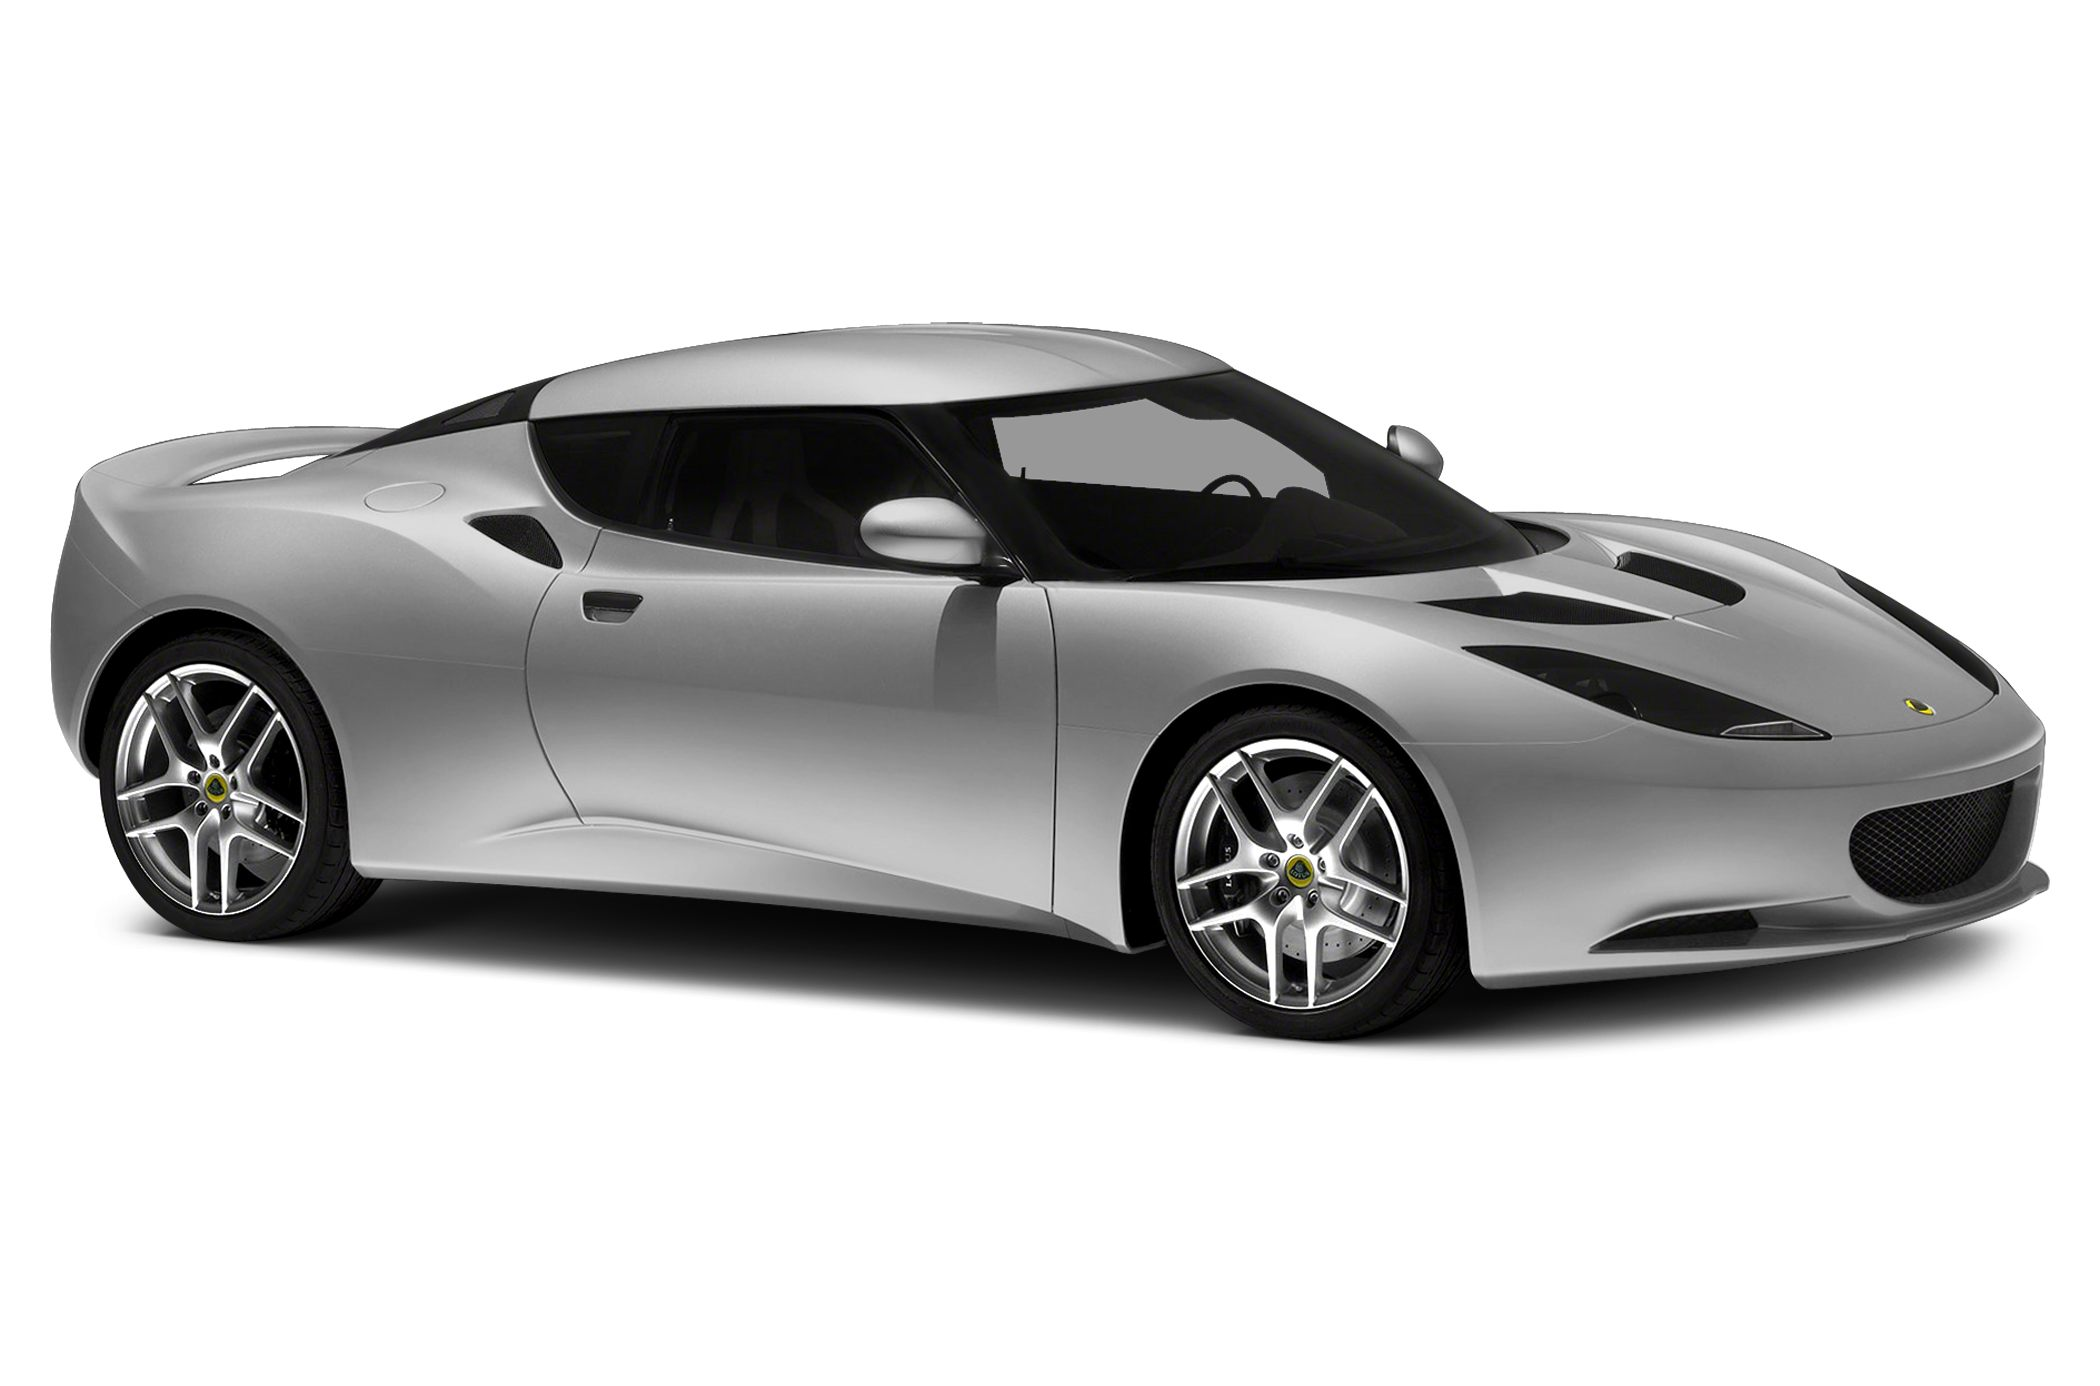 lotus evora news photos and buying information autoblog. Black Bedroom Furniture Sets. Home Design Ideas